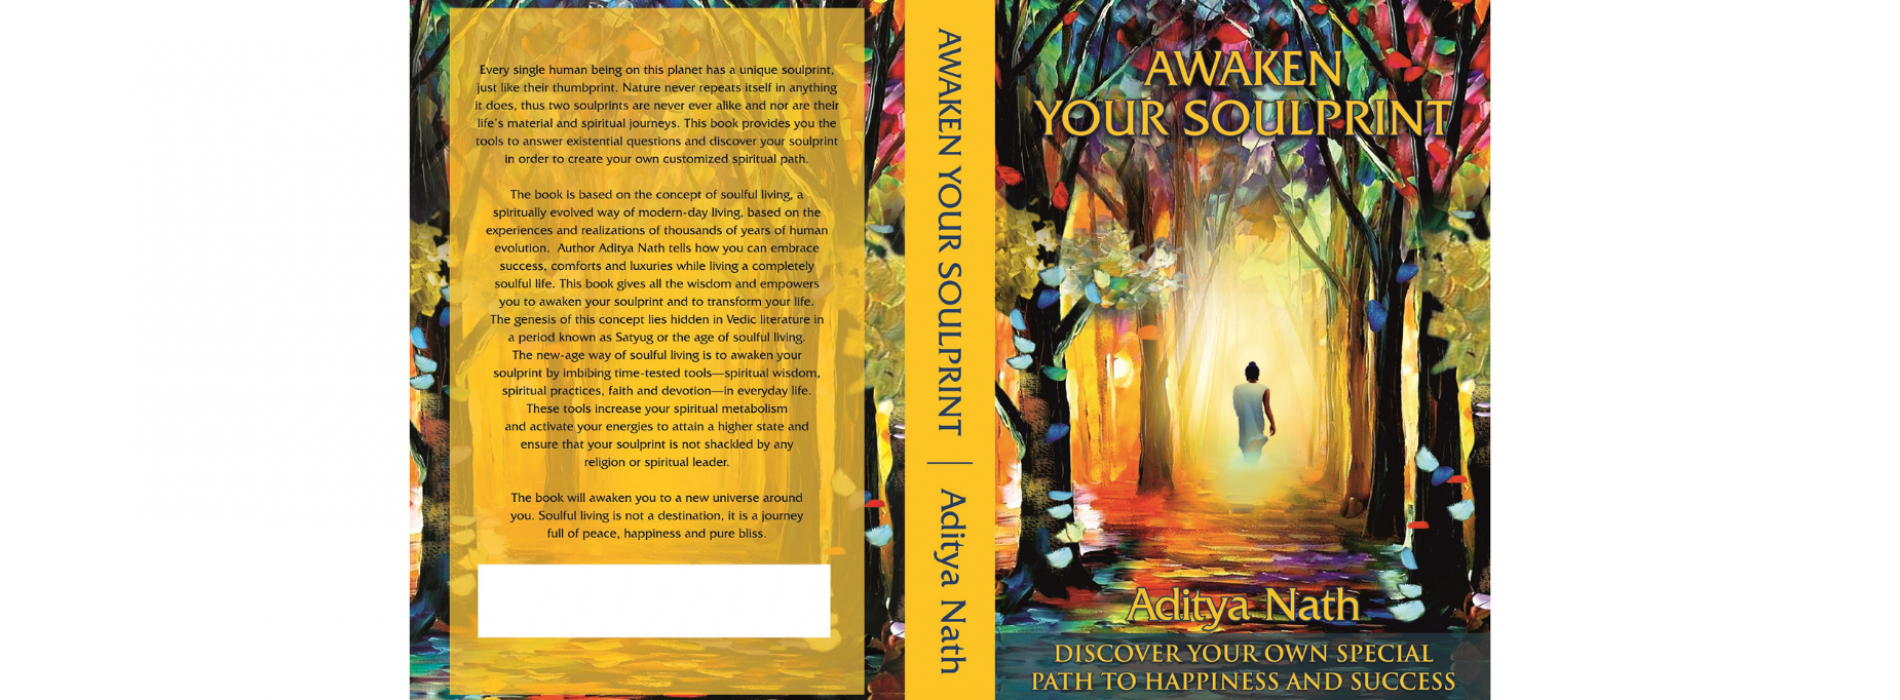 BOOK REVIEW: Awaken Your Soulprint by Aditya Nath